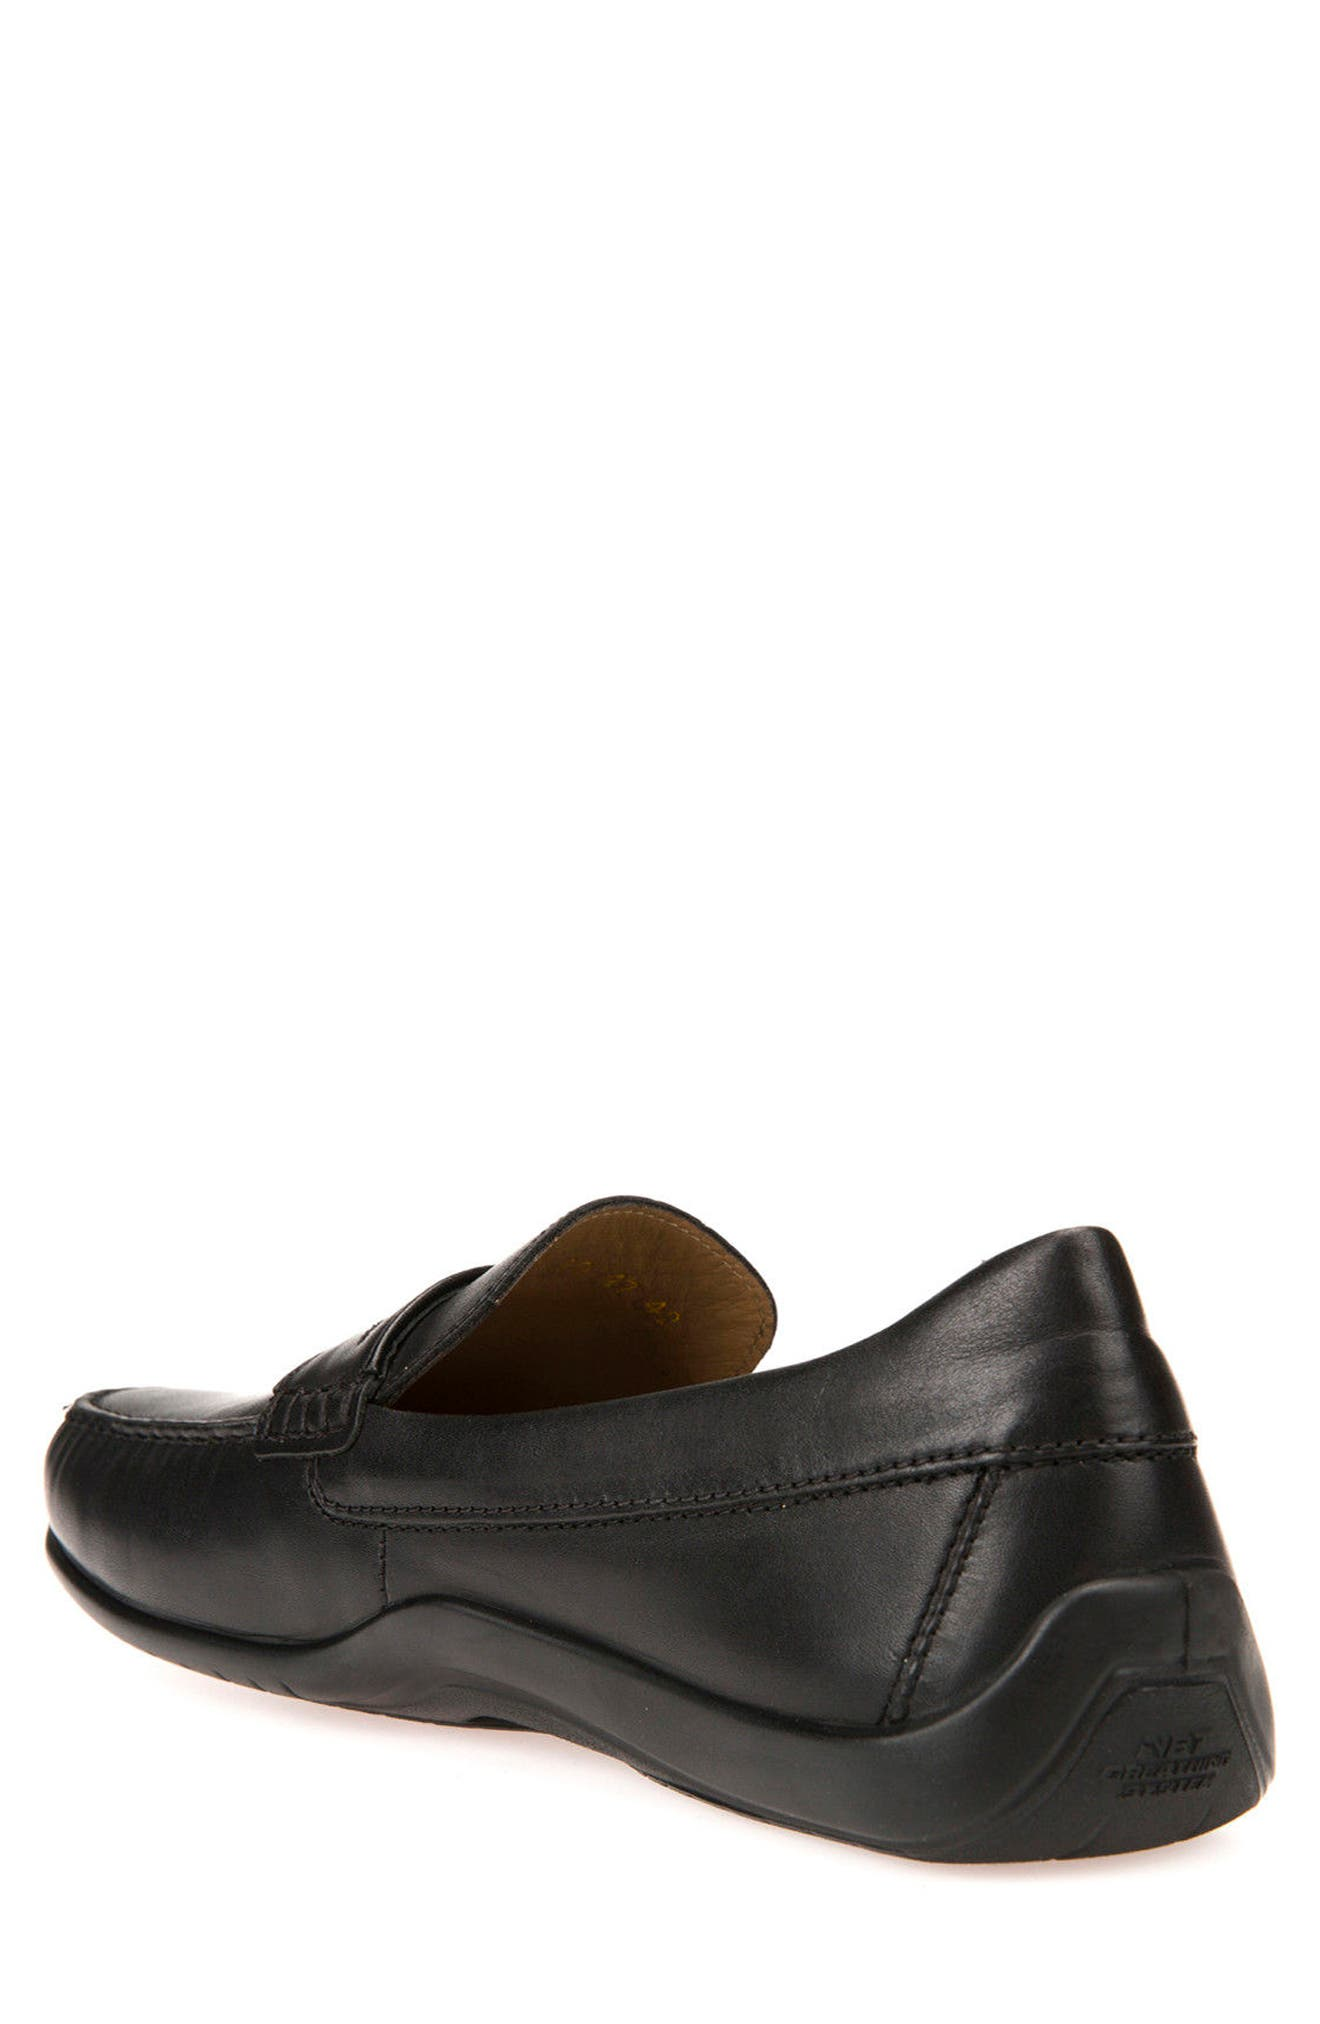 Alternate Image 2  - Geox Xense Penny Loafer (Men)